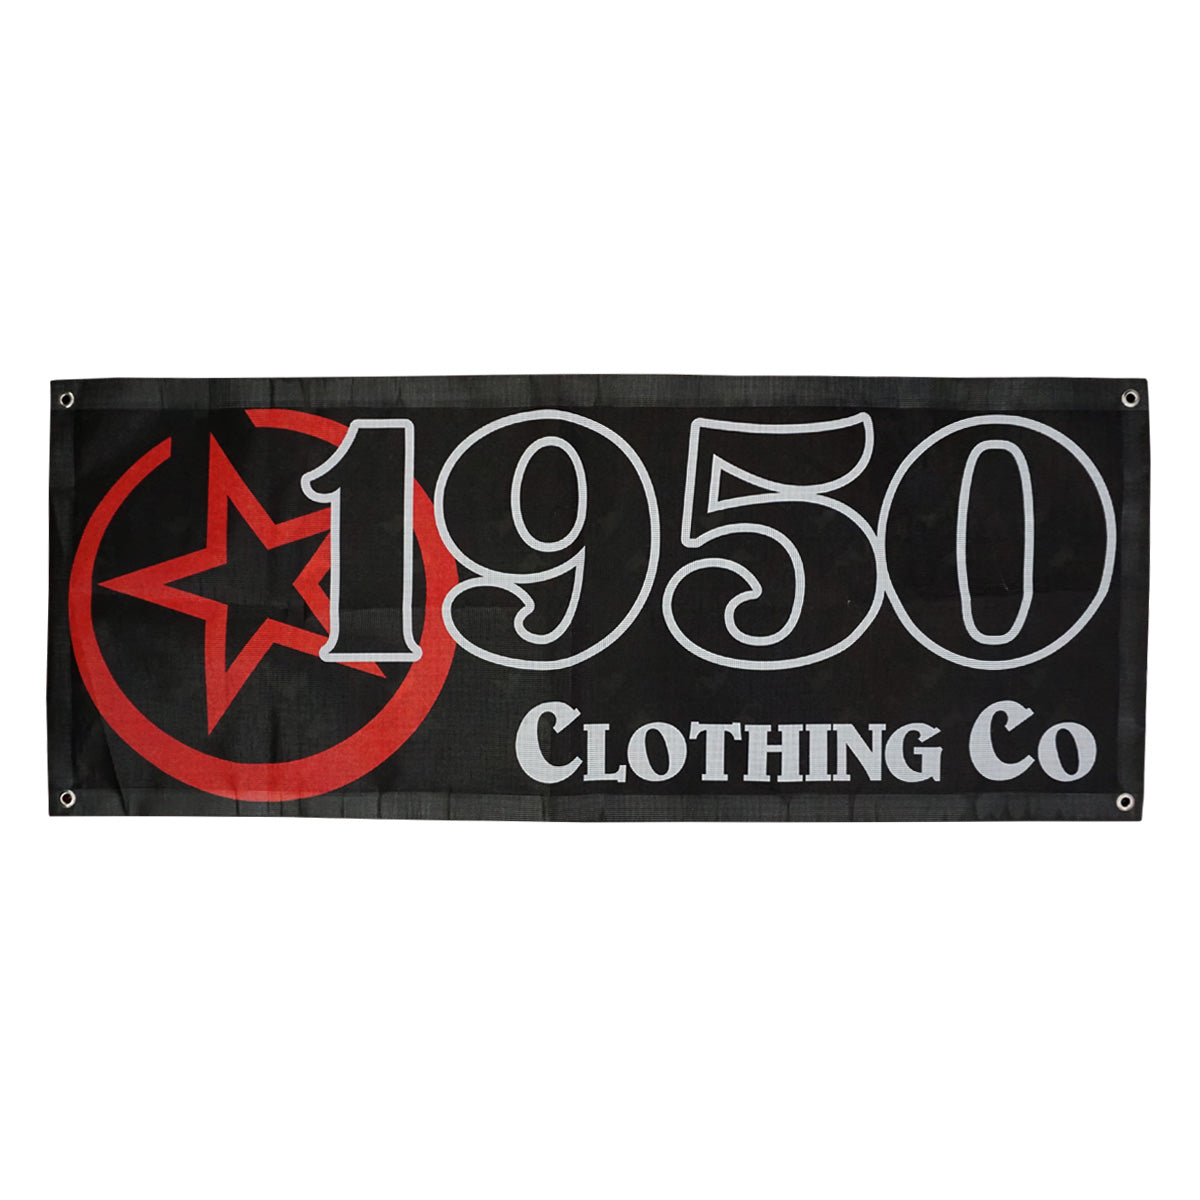 f020db1dfe 1950 Clothing Co - Best Country Clothing Shop